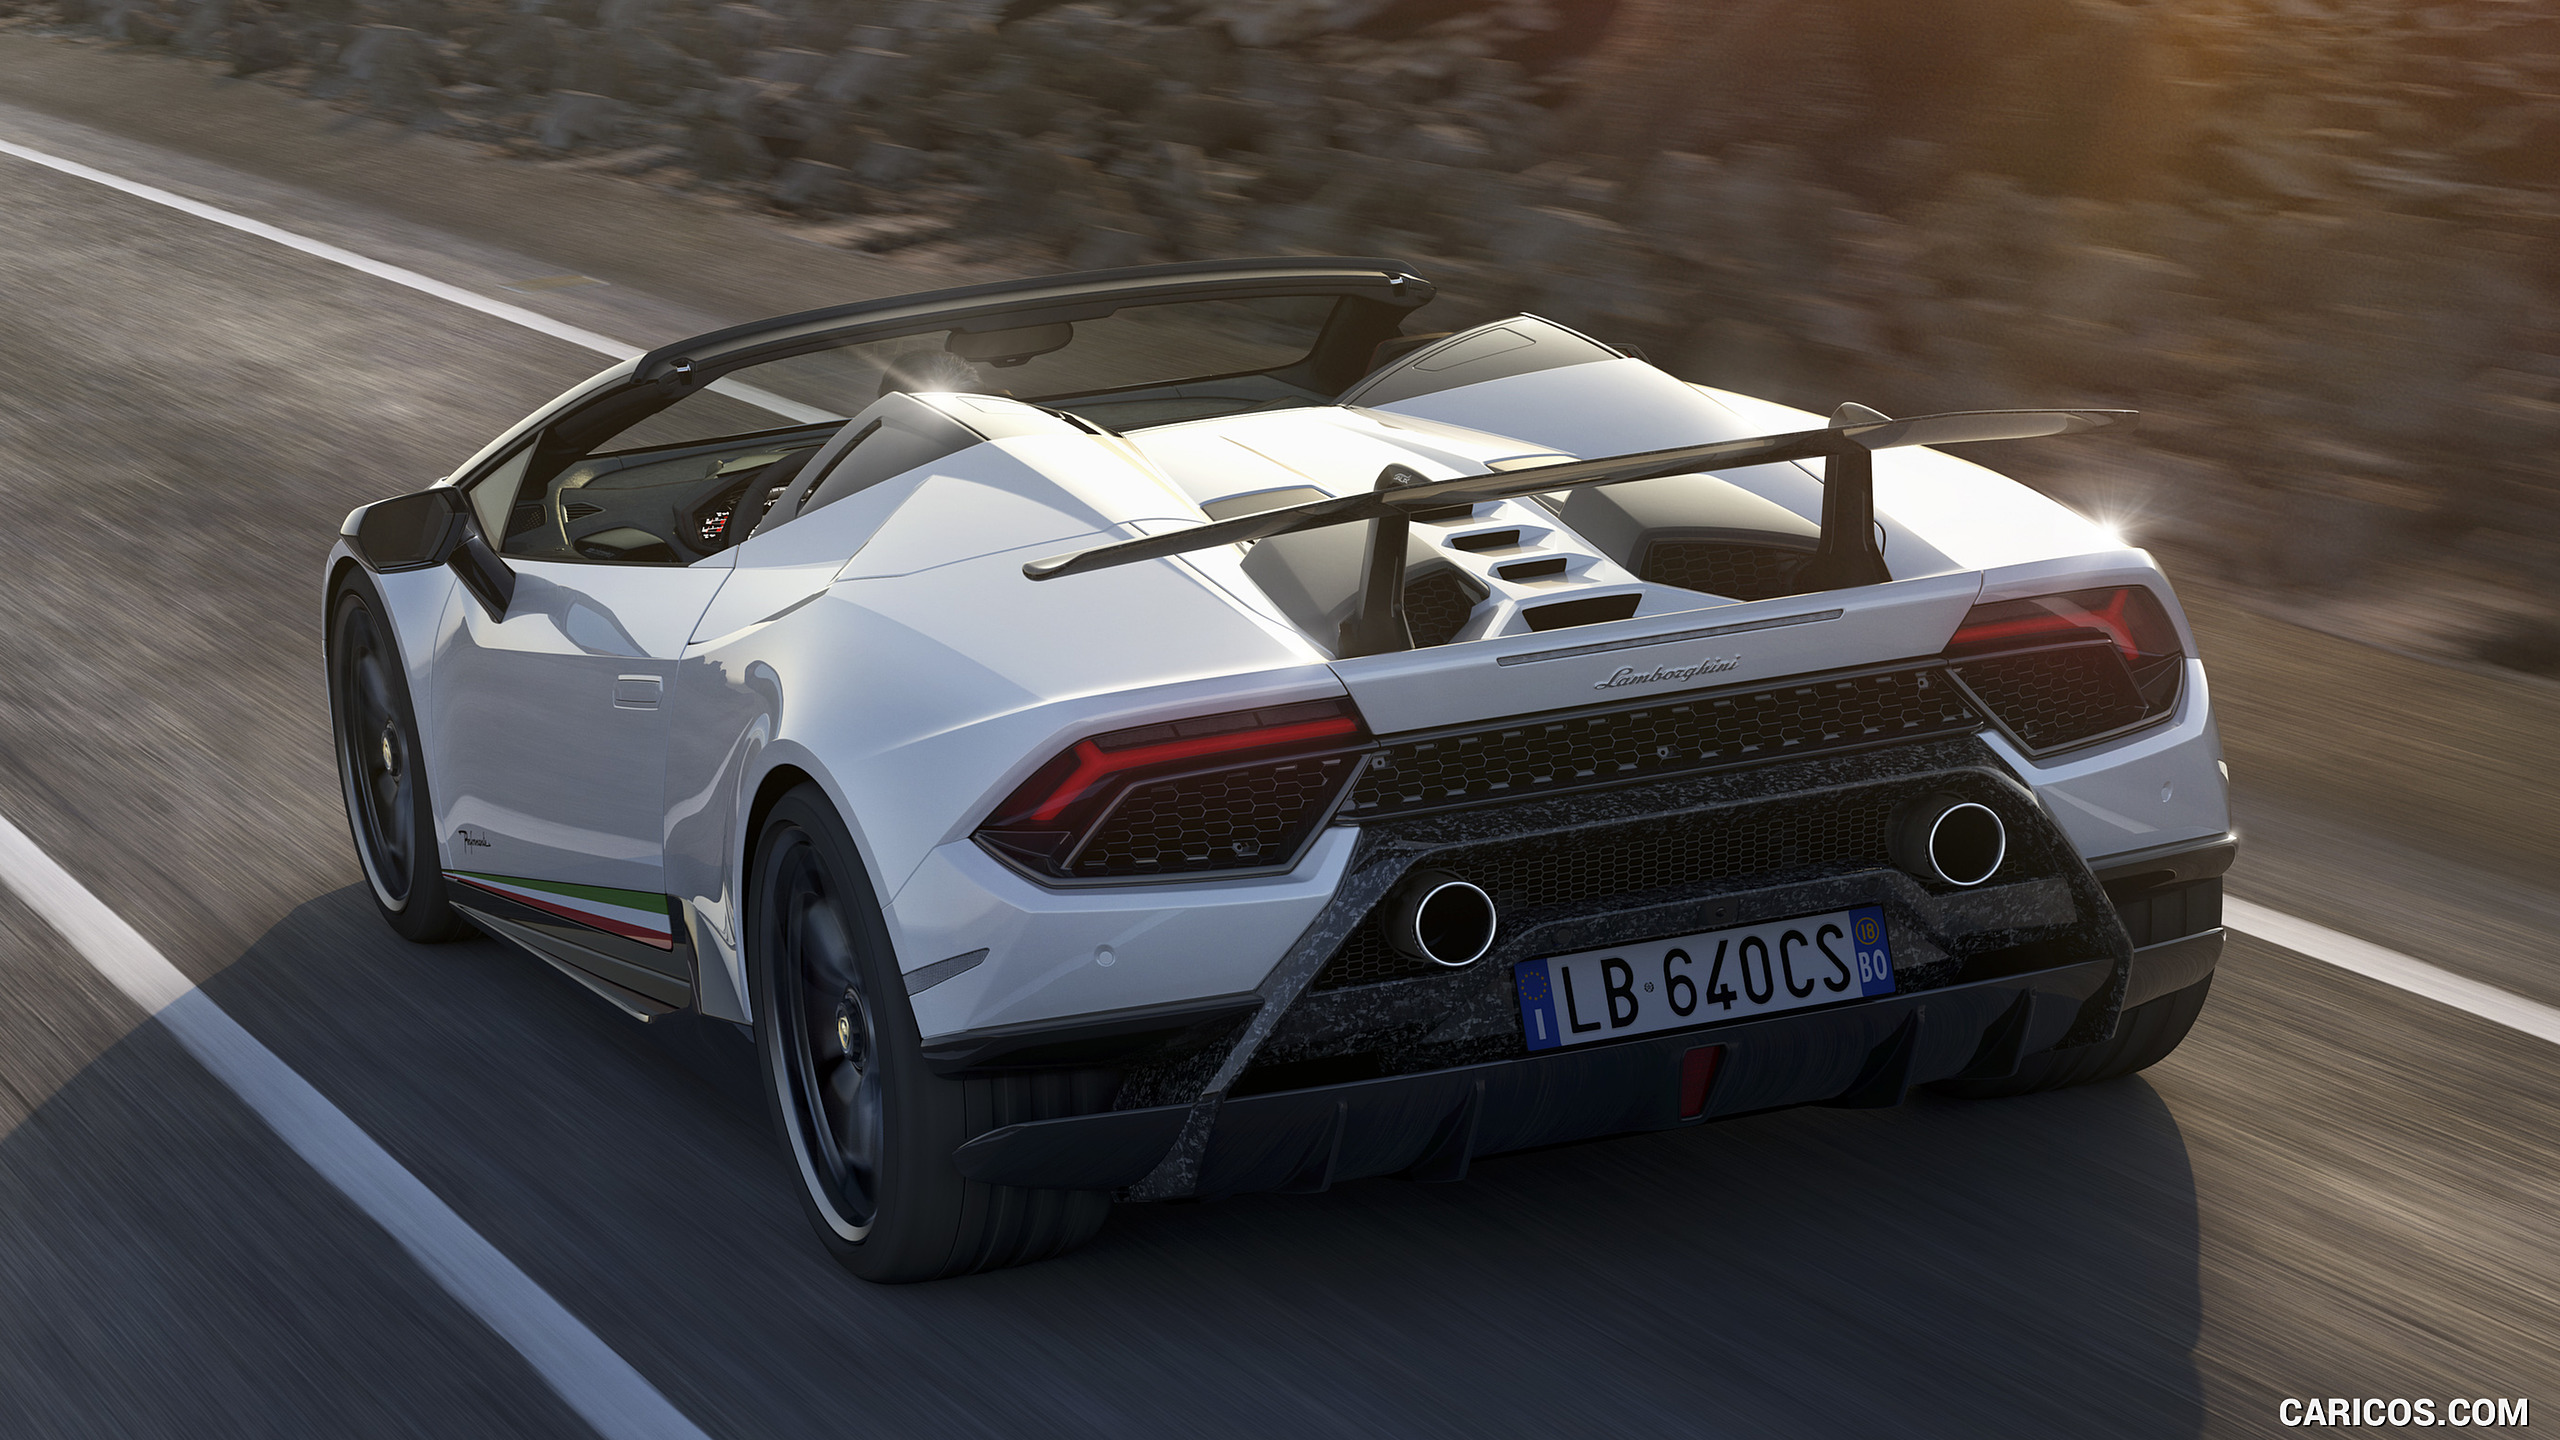 2019 Lamborghini Huracn Spyder Performante   Rear HD Wallpaper 8 2560x1440